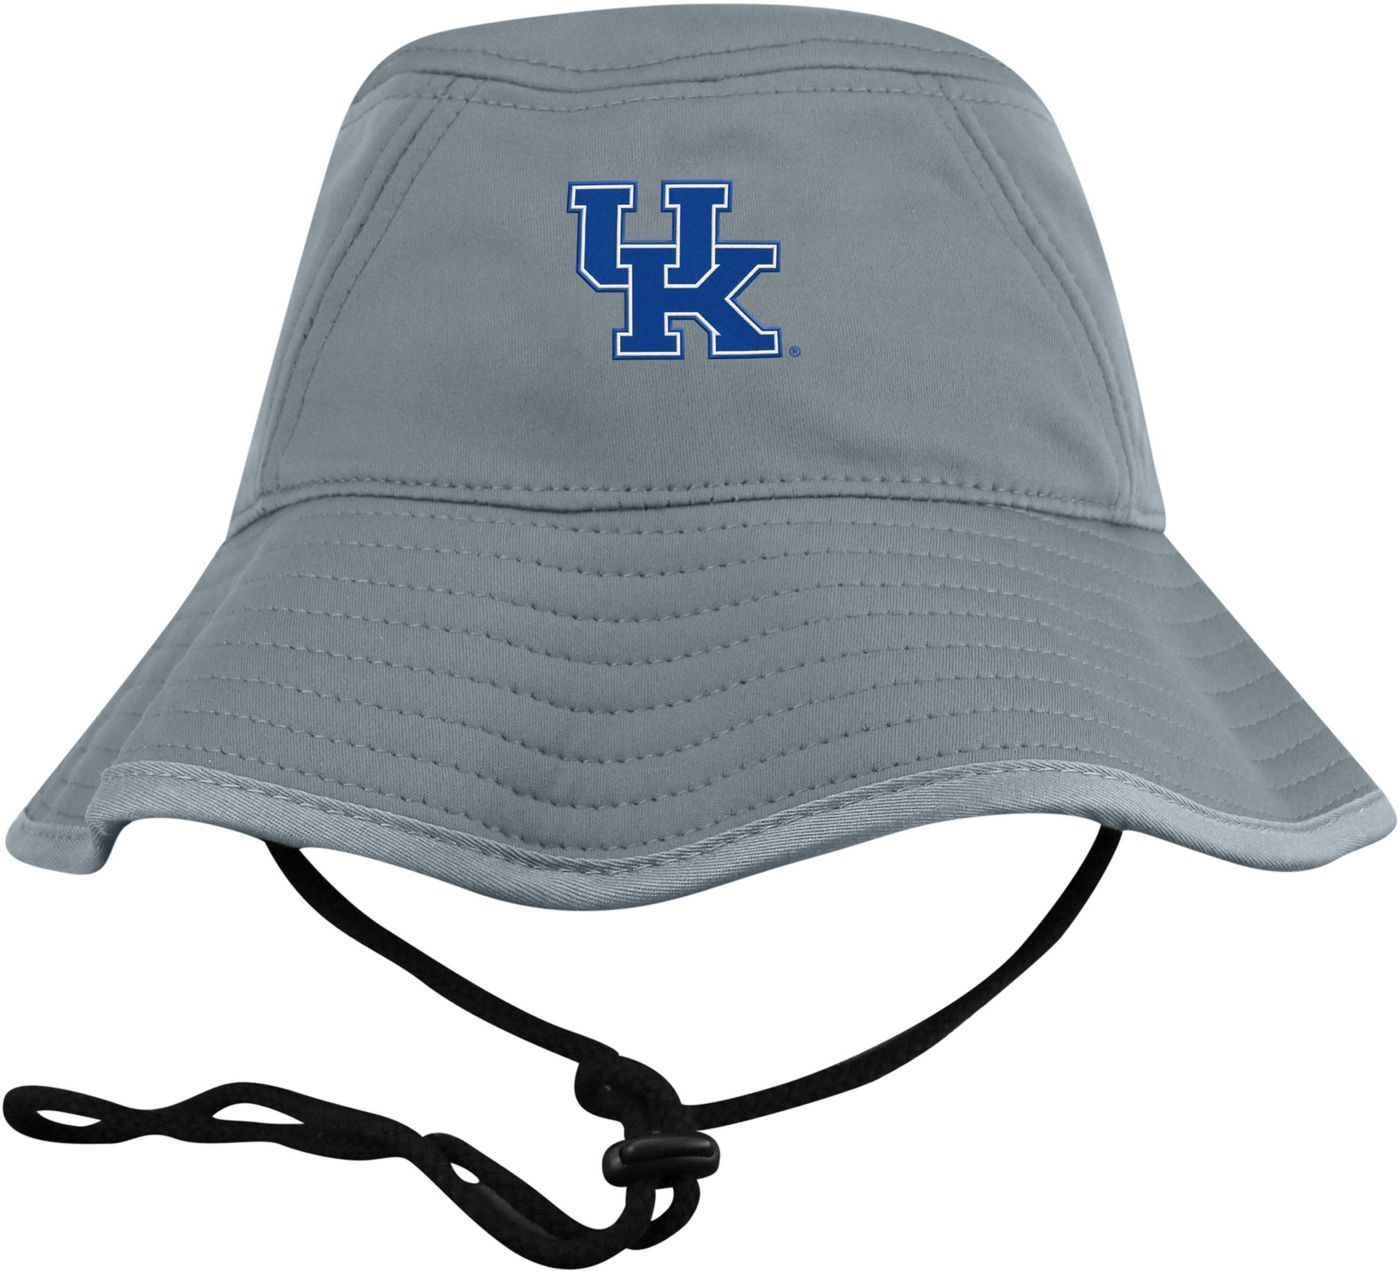 Top of the World Men's Kentucky Wildcats Grey Bucket Hat